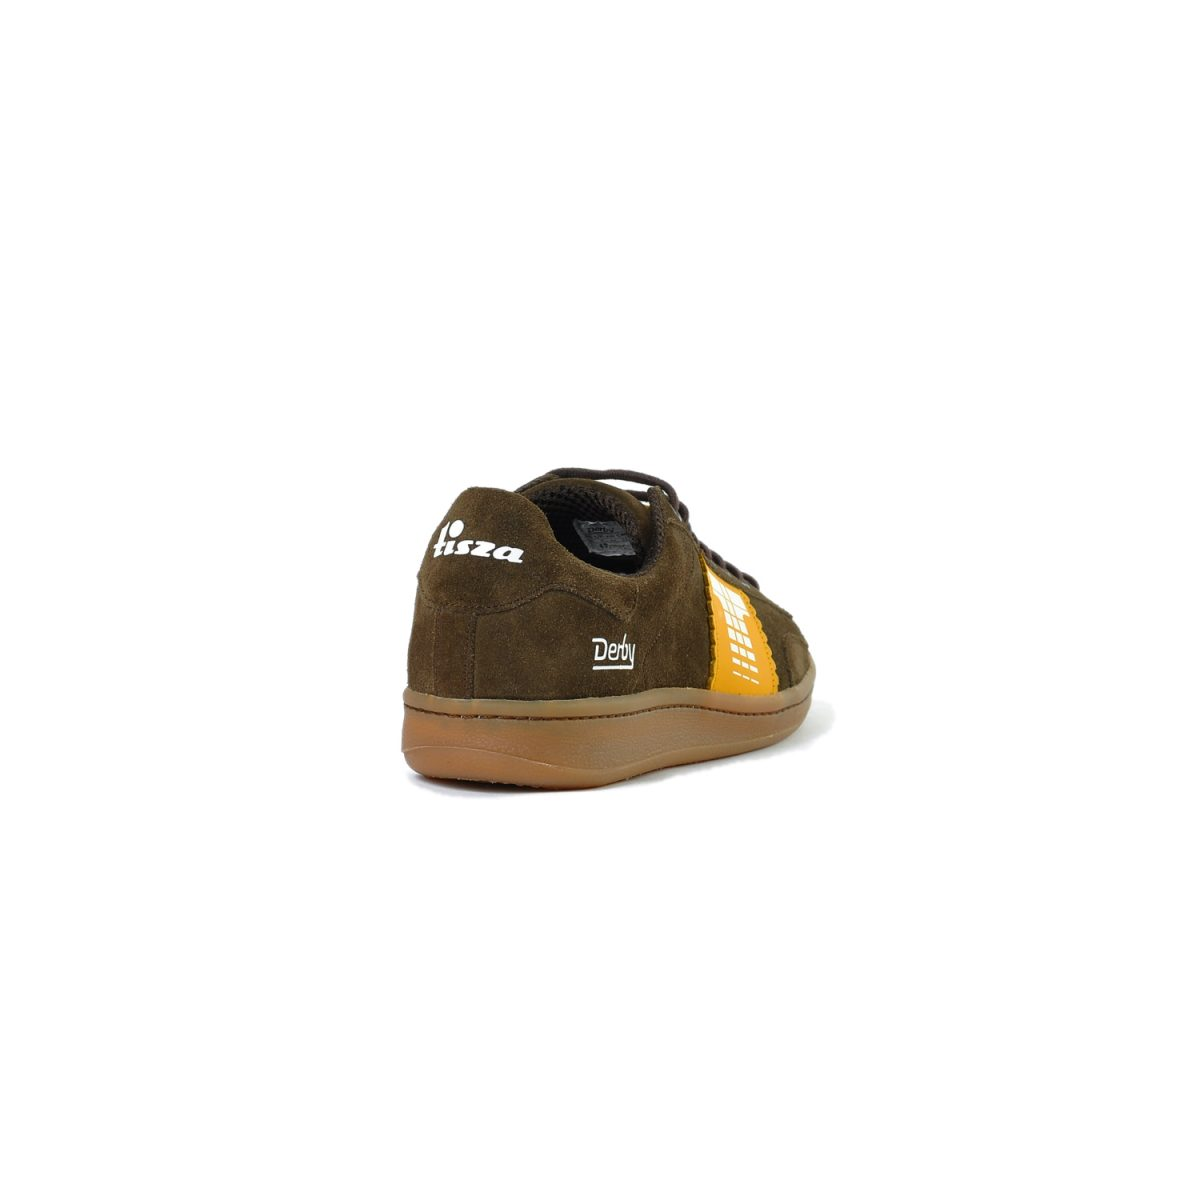 Tisza shoes - Derby - Brown-yellow